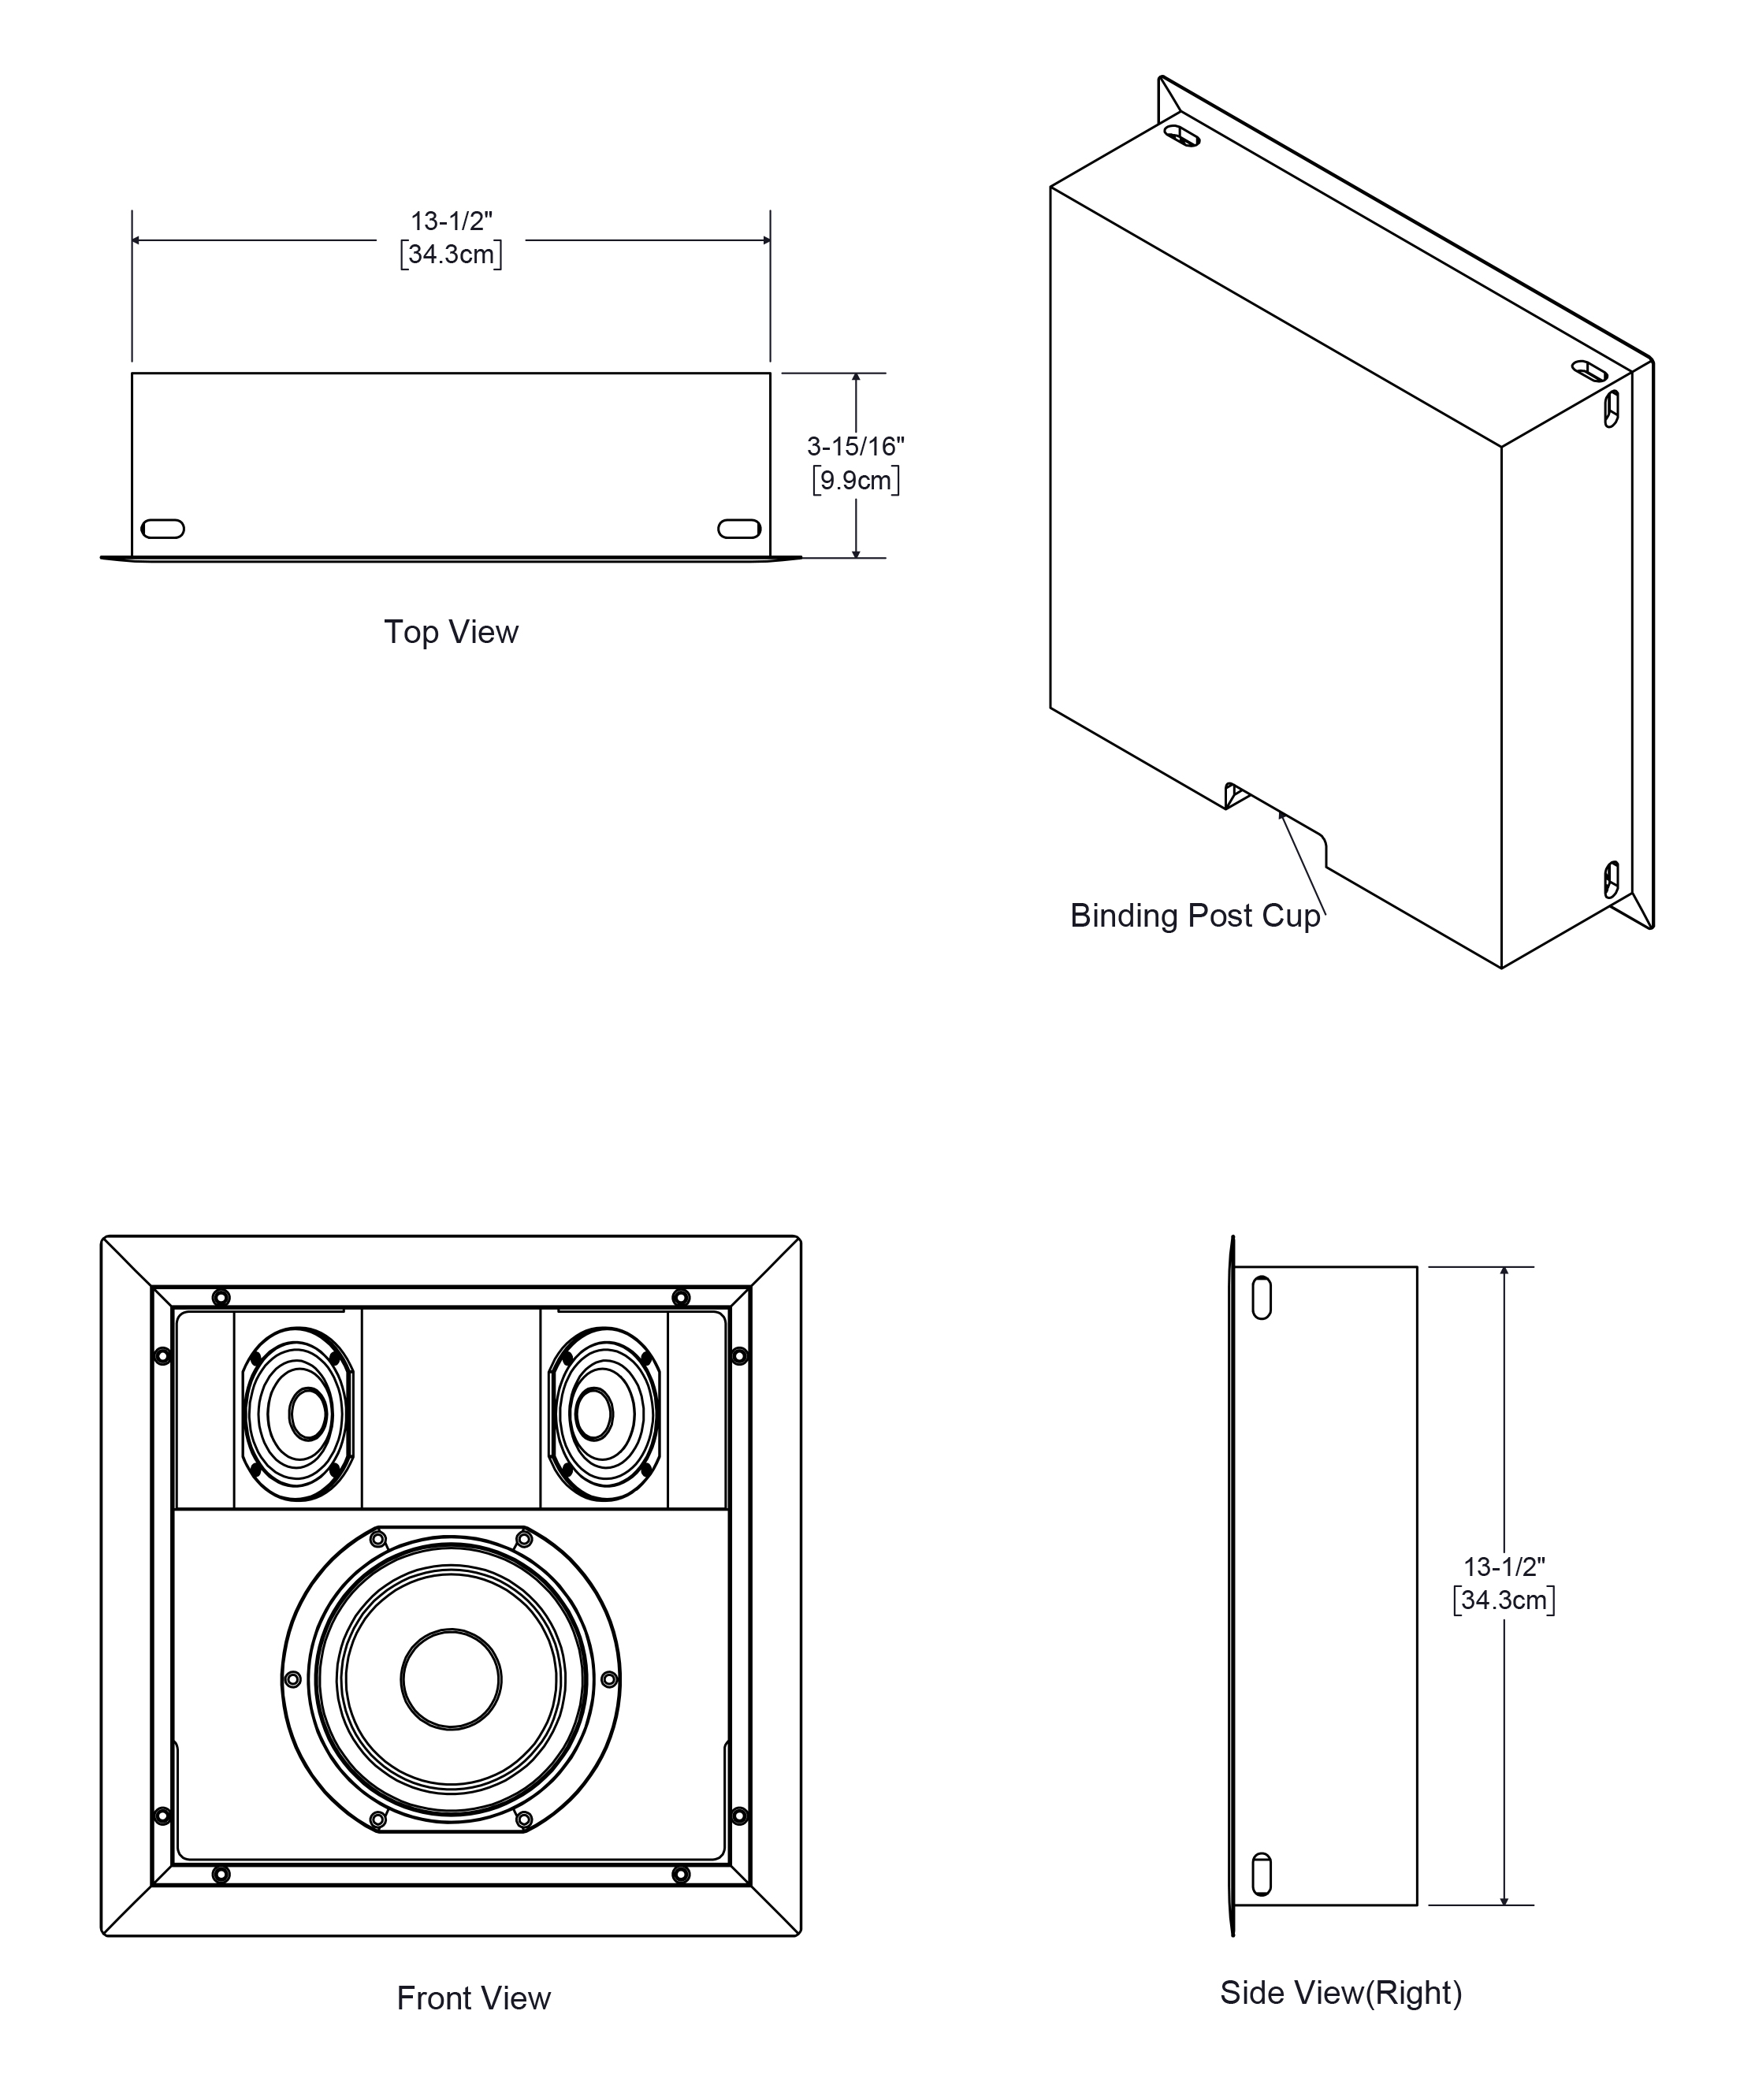 InWall-Silver-4-SurroundSM-Drawing-for-Cad-.jpg